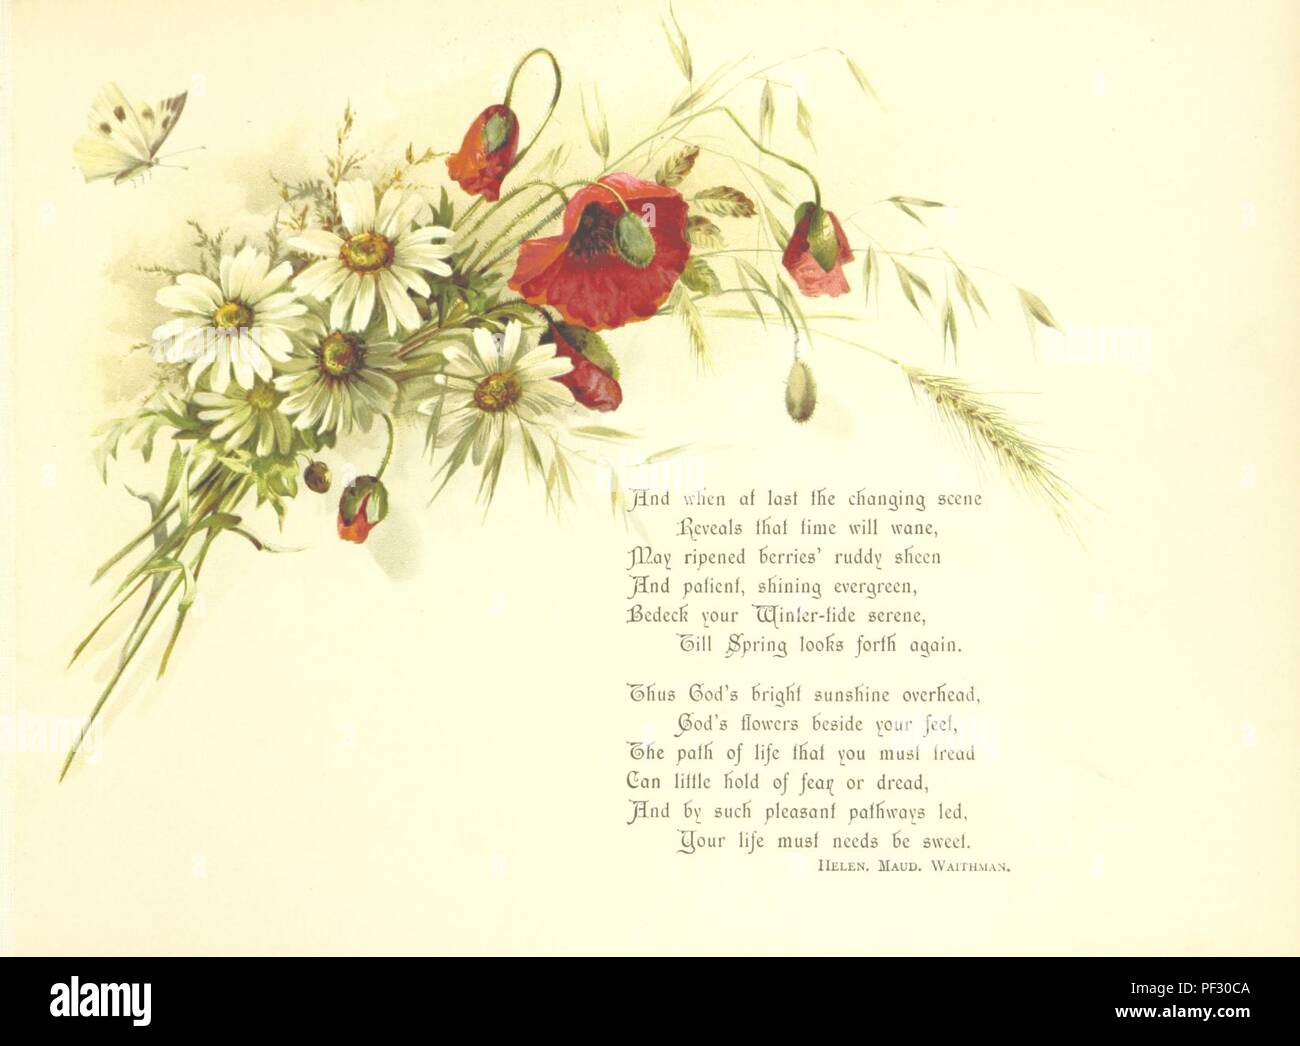 Image  from page 9 of 'A Pathway of Flowers, an album for autographs, and ... verses ... With an introduction [in verse] by Helen M. Waithman' . - Stock Image